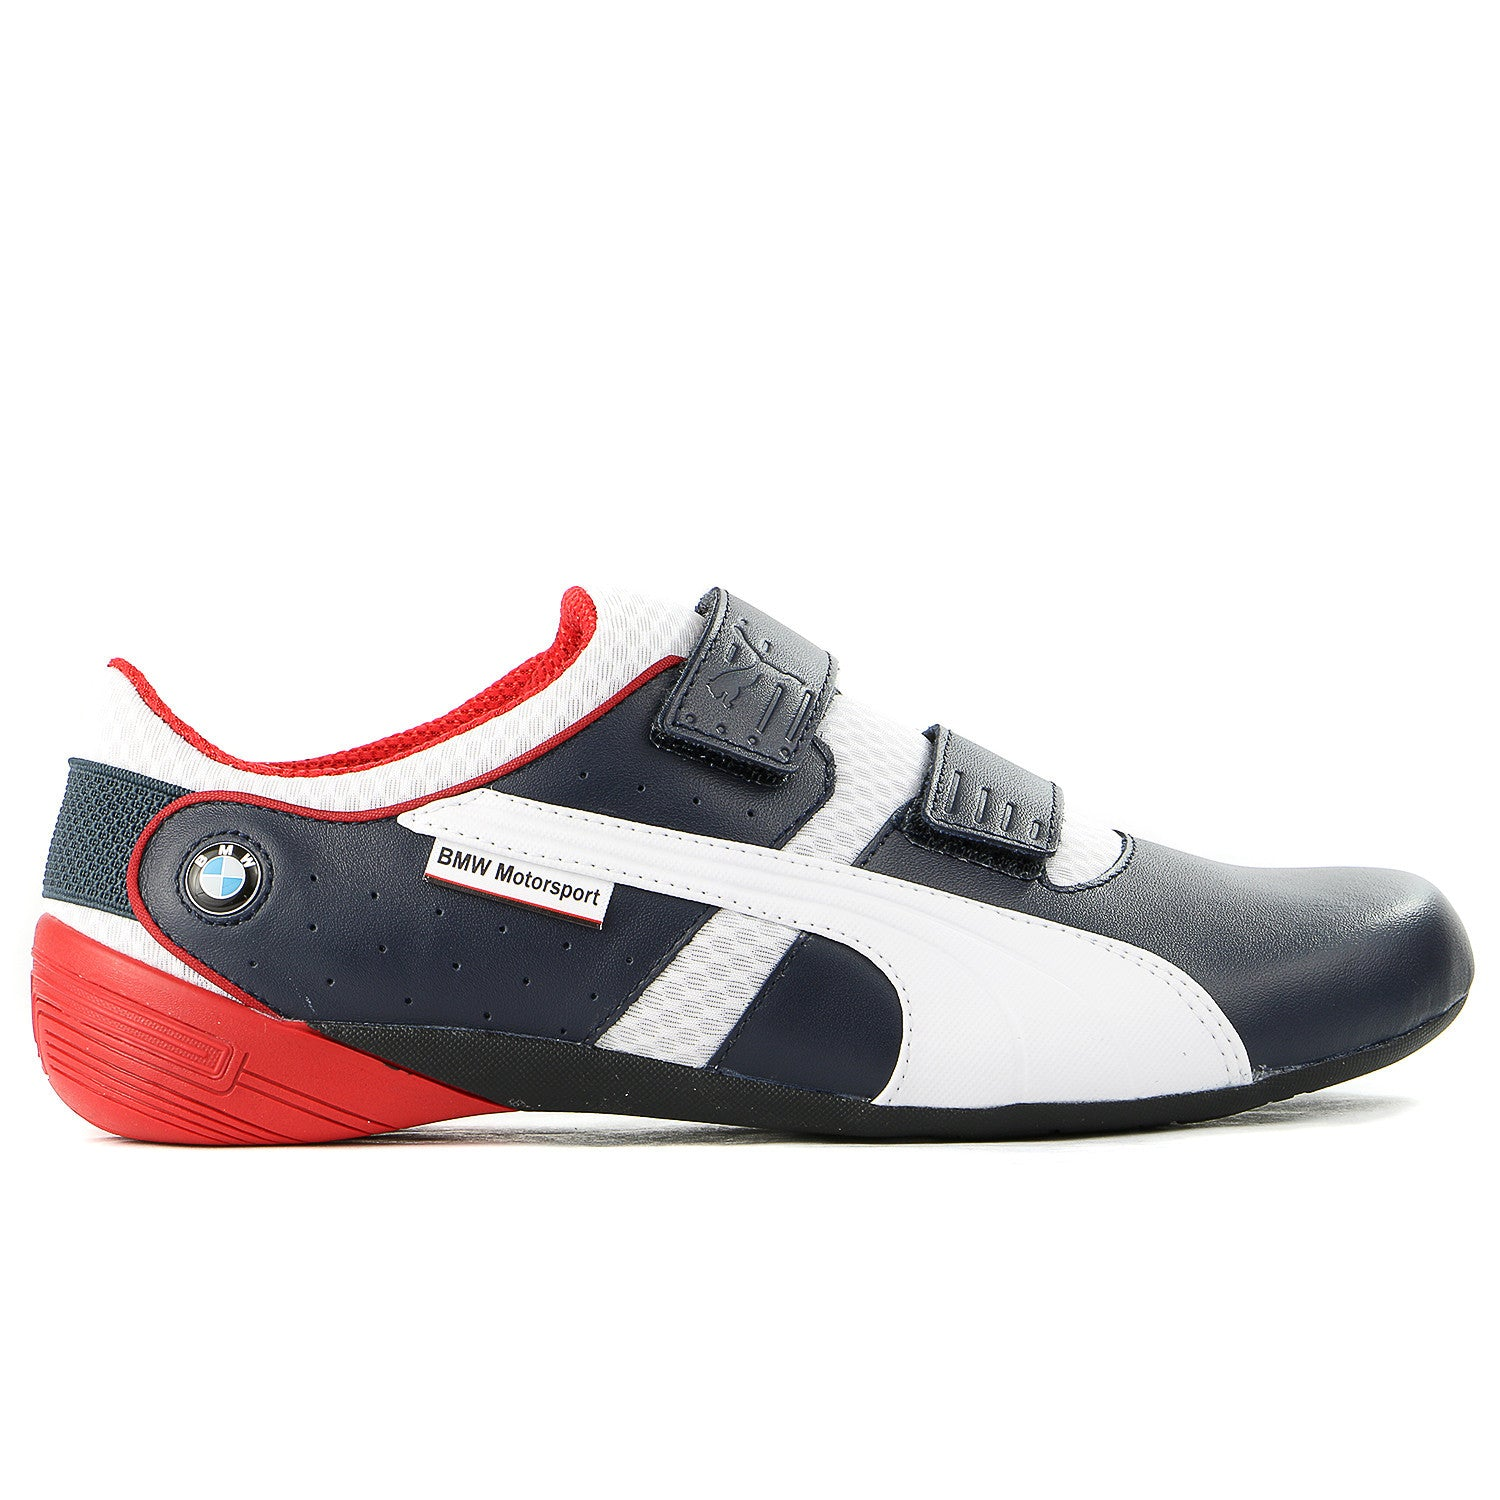 Puma Bmw Motorsport Nyter 2 Fashion Sneaker Shoe White